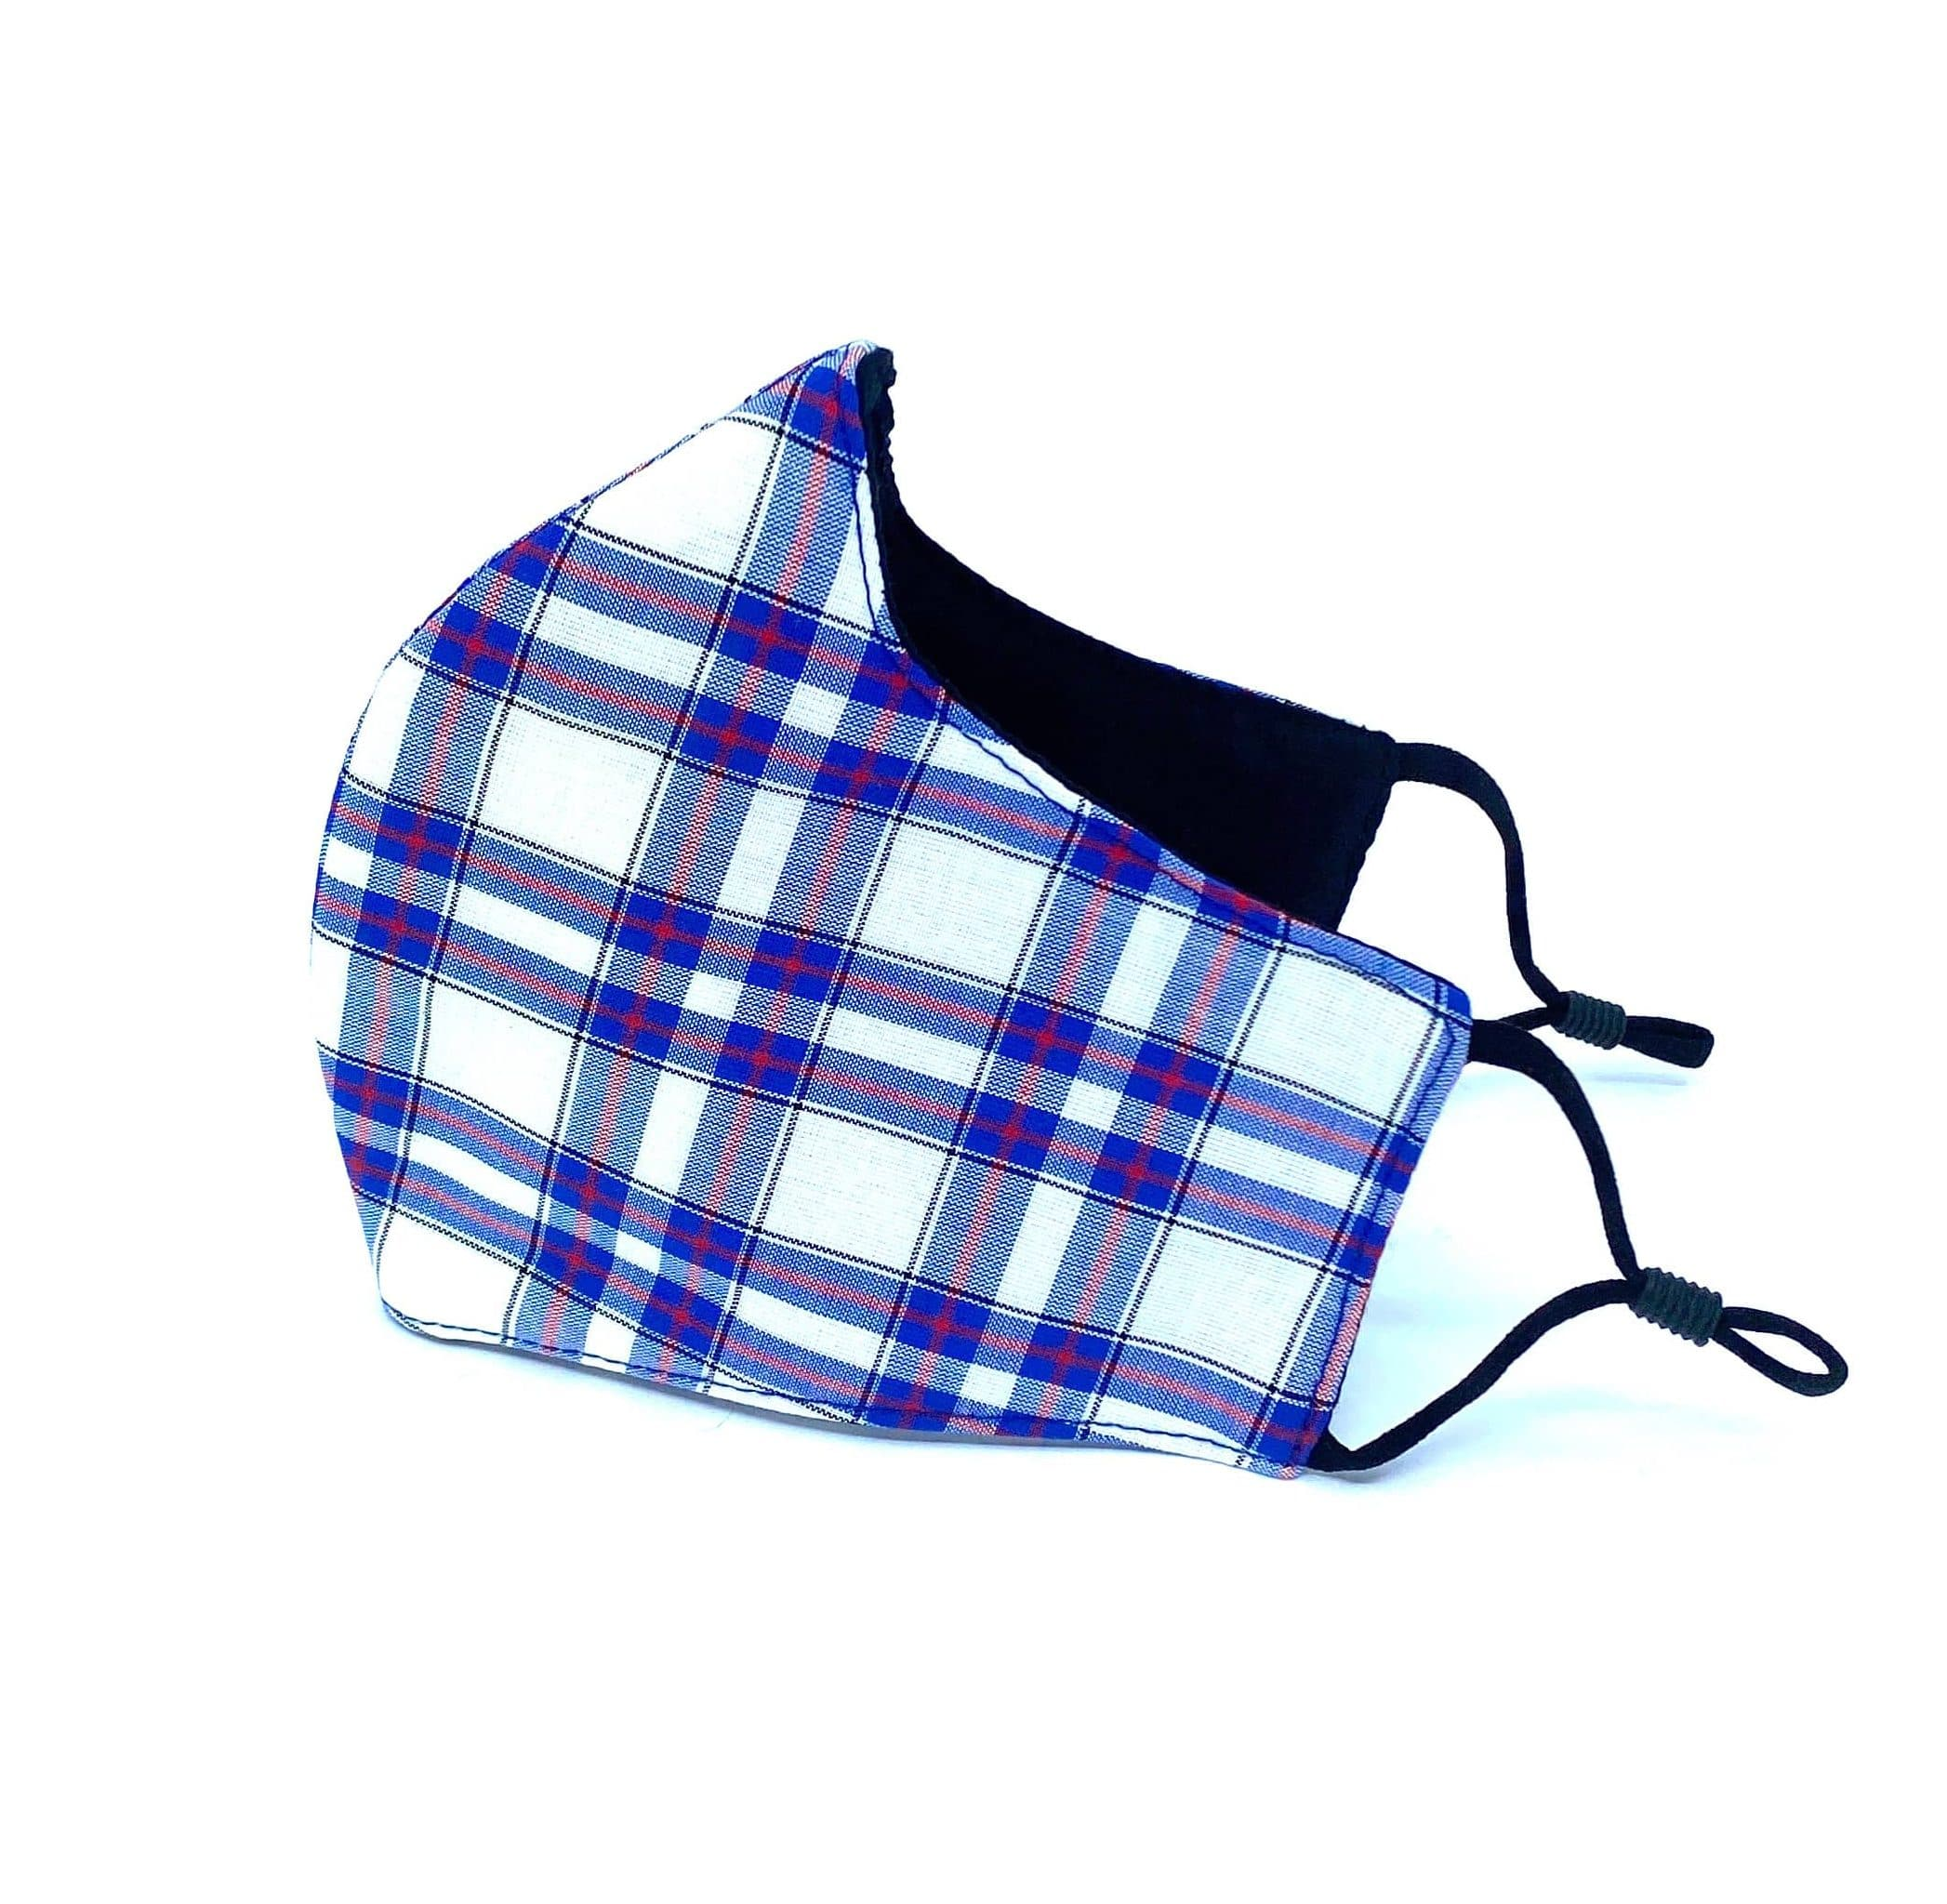 Striped Tartan Reusable Face Mask